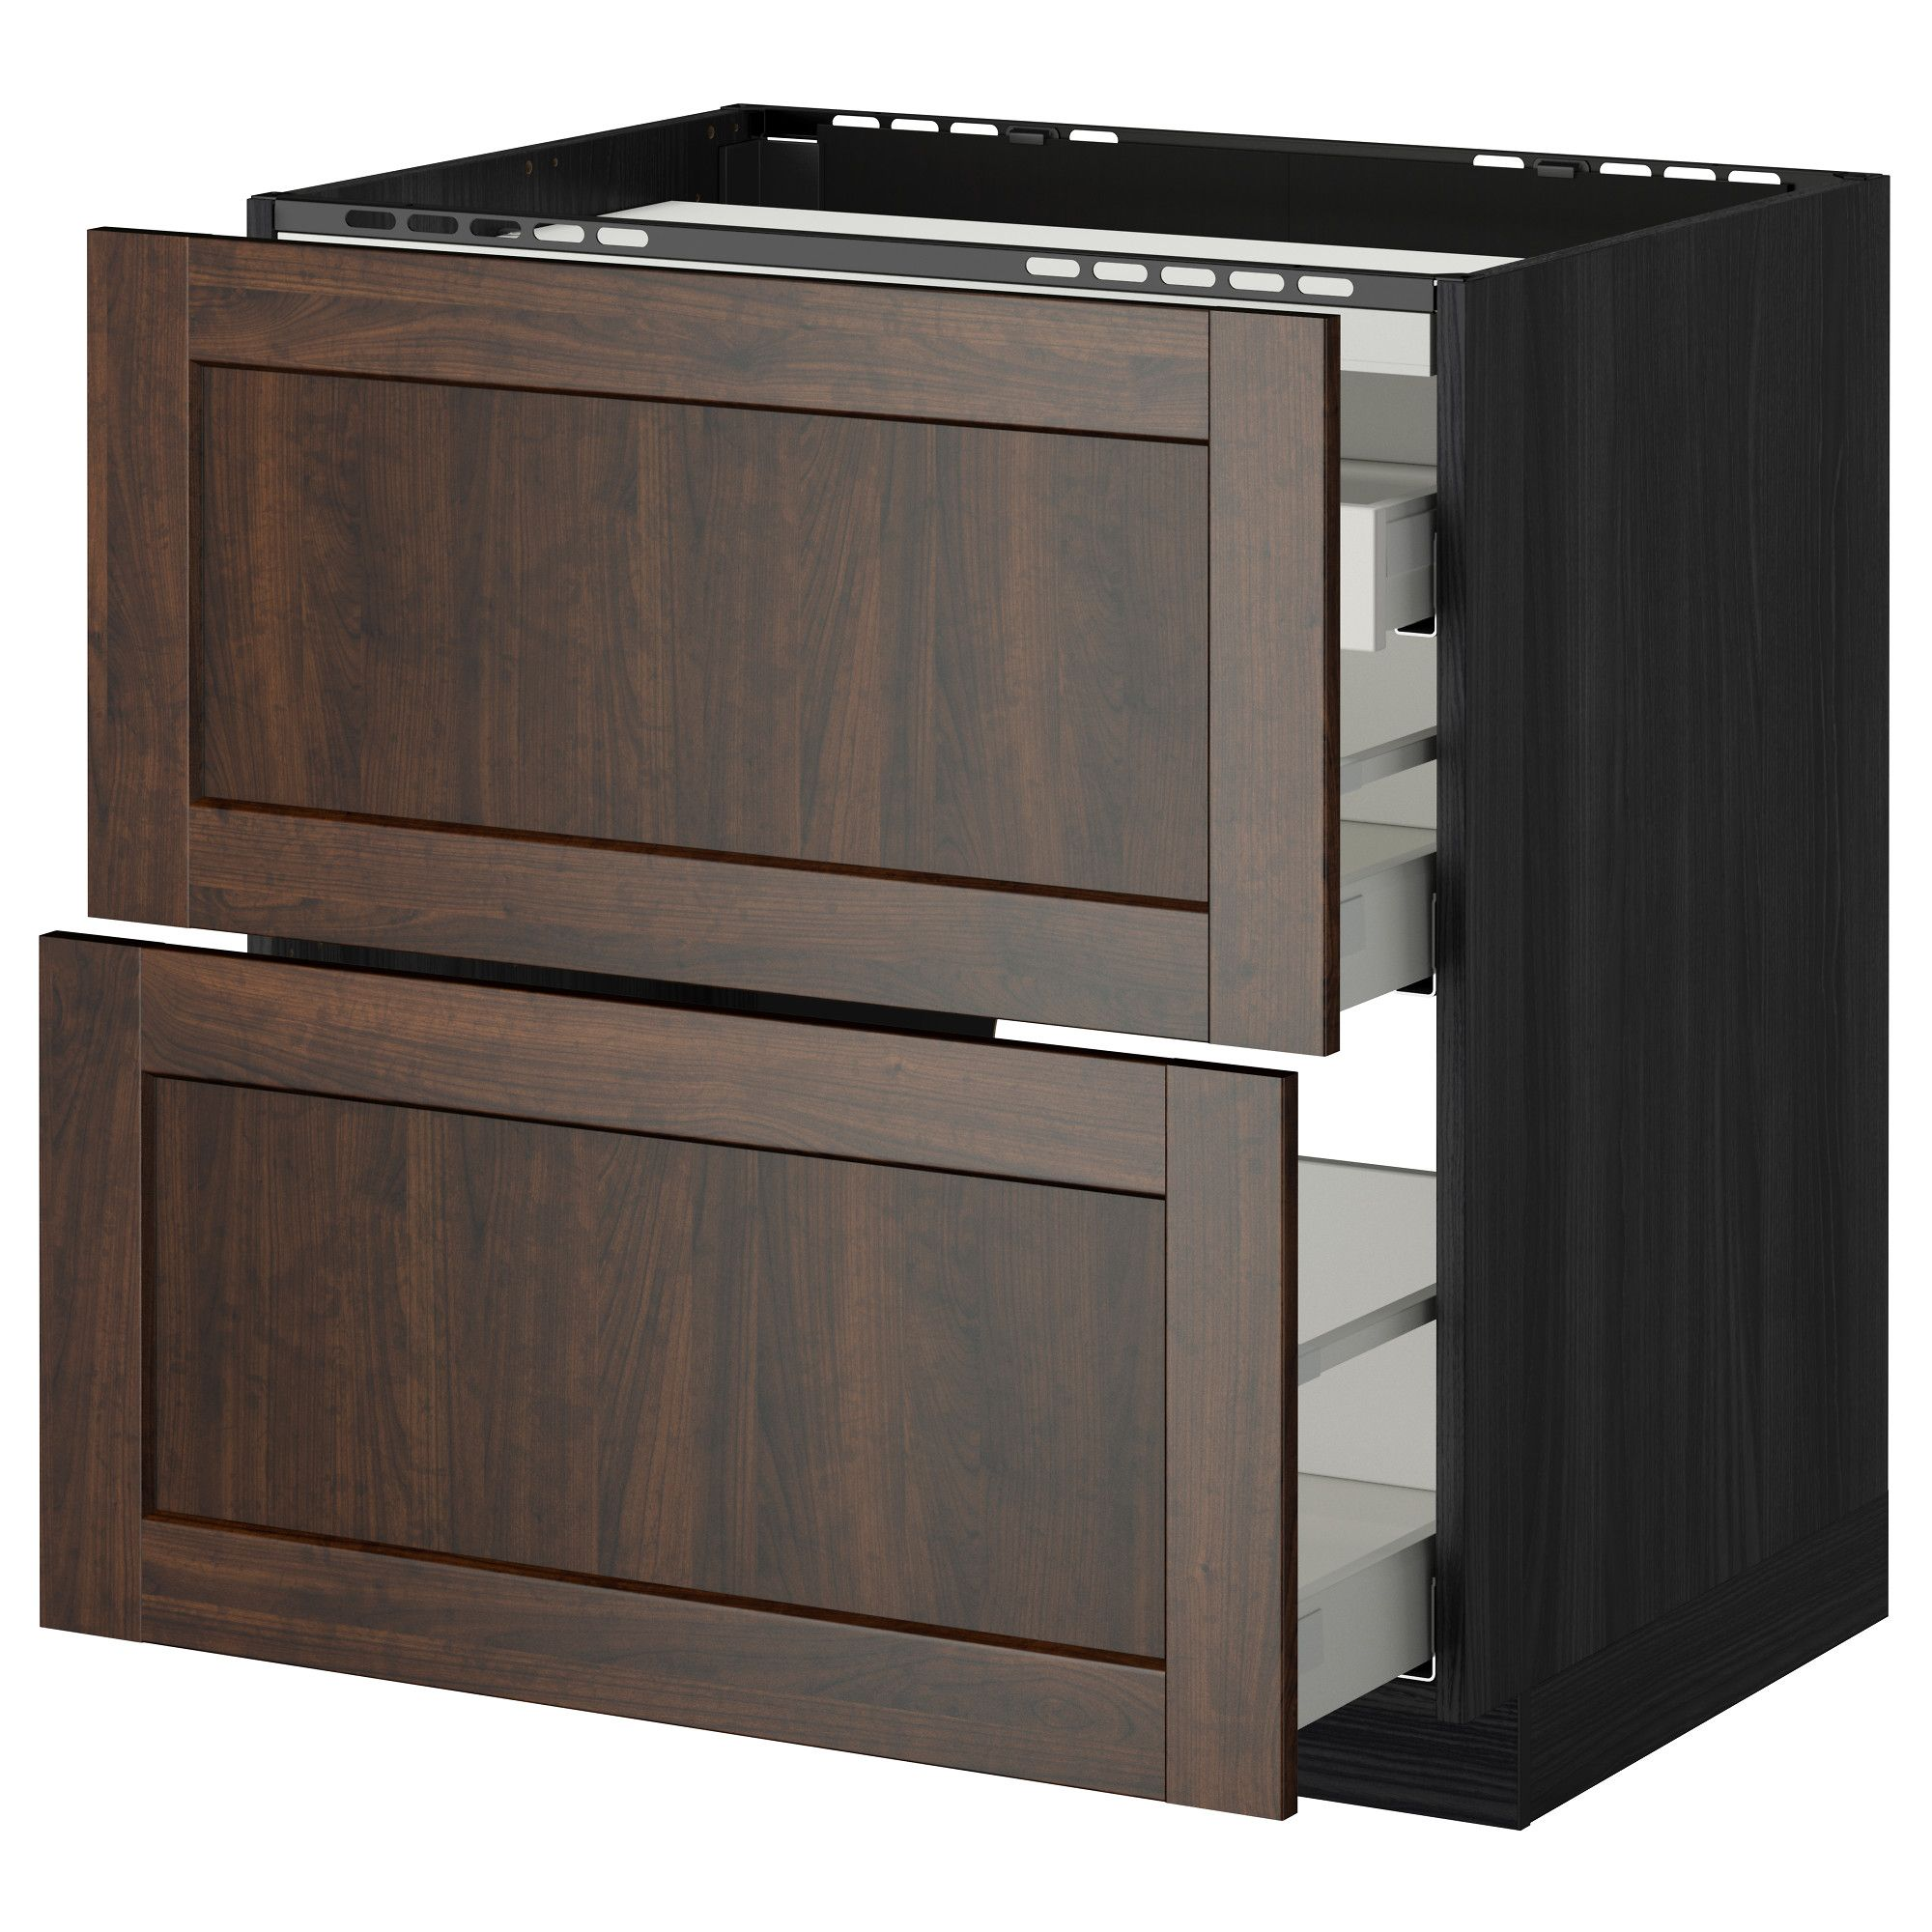 IKEA Eneryda 503.475.17 Cup Cabinet Pull Black 2 Pack Size 3 1//2